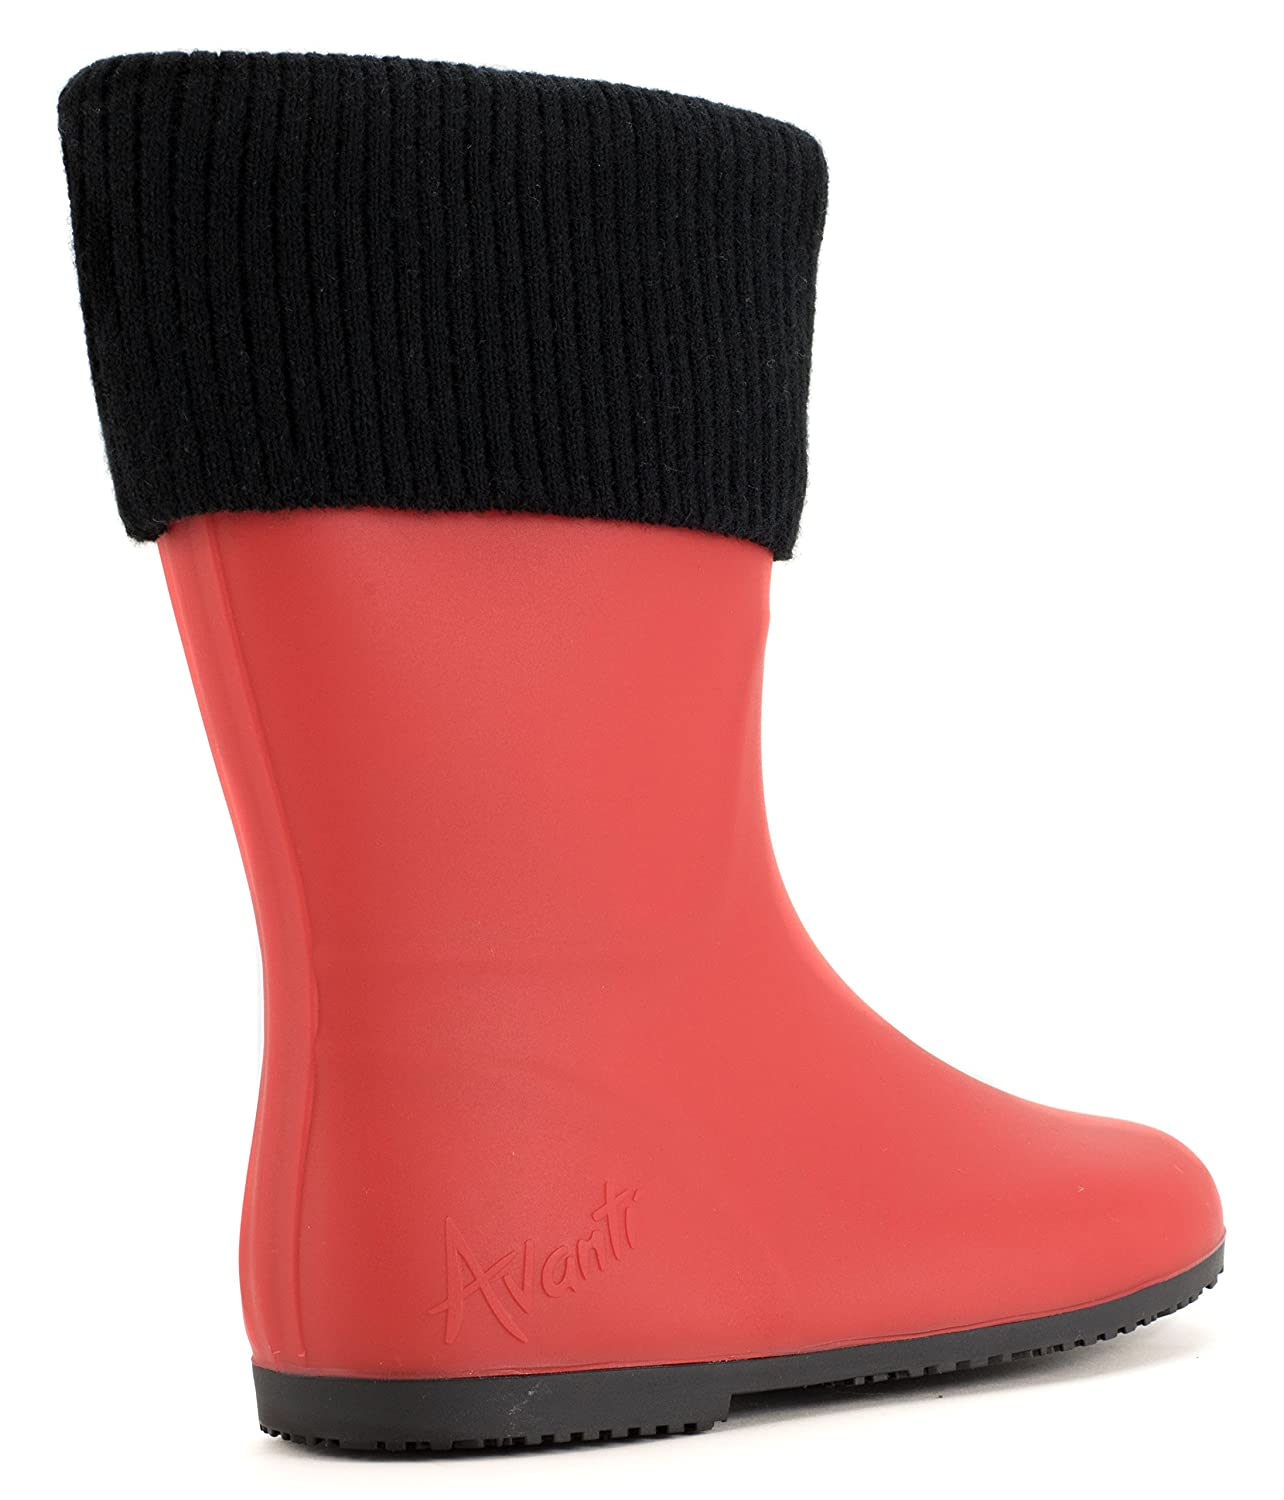 Avanti With Storm Rain Boot Waterproof With Avanti Removable Knitted Cuff Monogram-Able Foldable B078SYN244 7 B(M) US|Red and Black ab3220